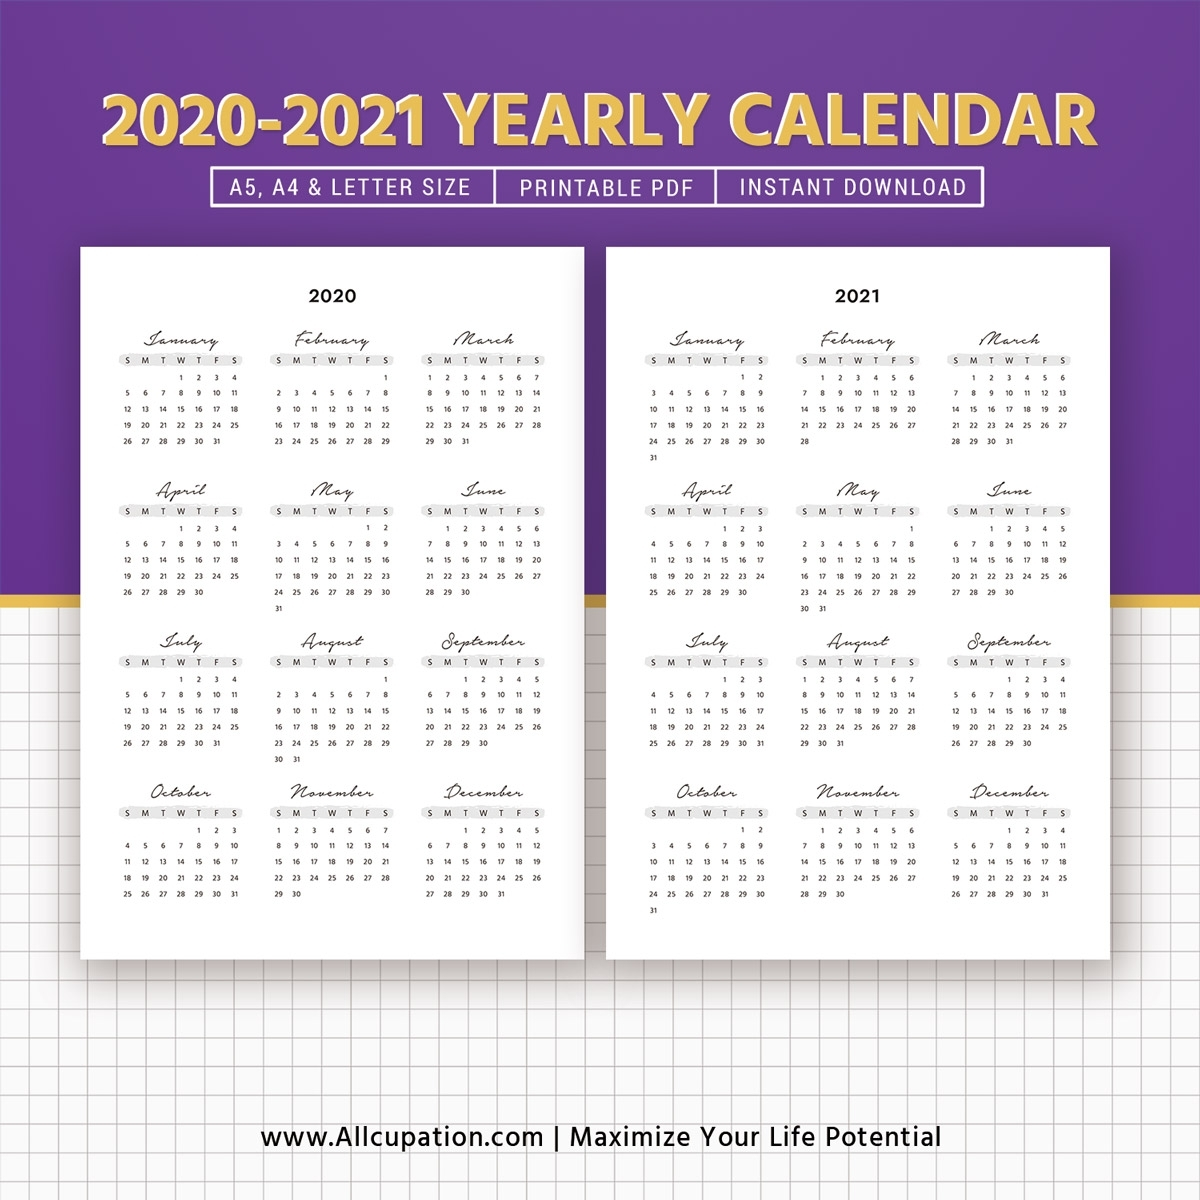 2020-2021 Yearly Calendar, Year At A Glance, Printable Calendar, Best  Planner, Planner Printable, Planner Inserts, Planner Template, Filofax A5,  A4,